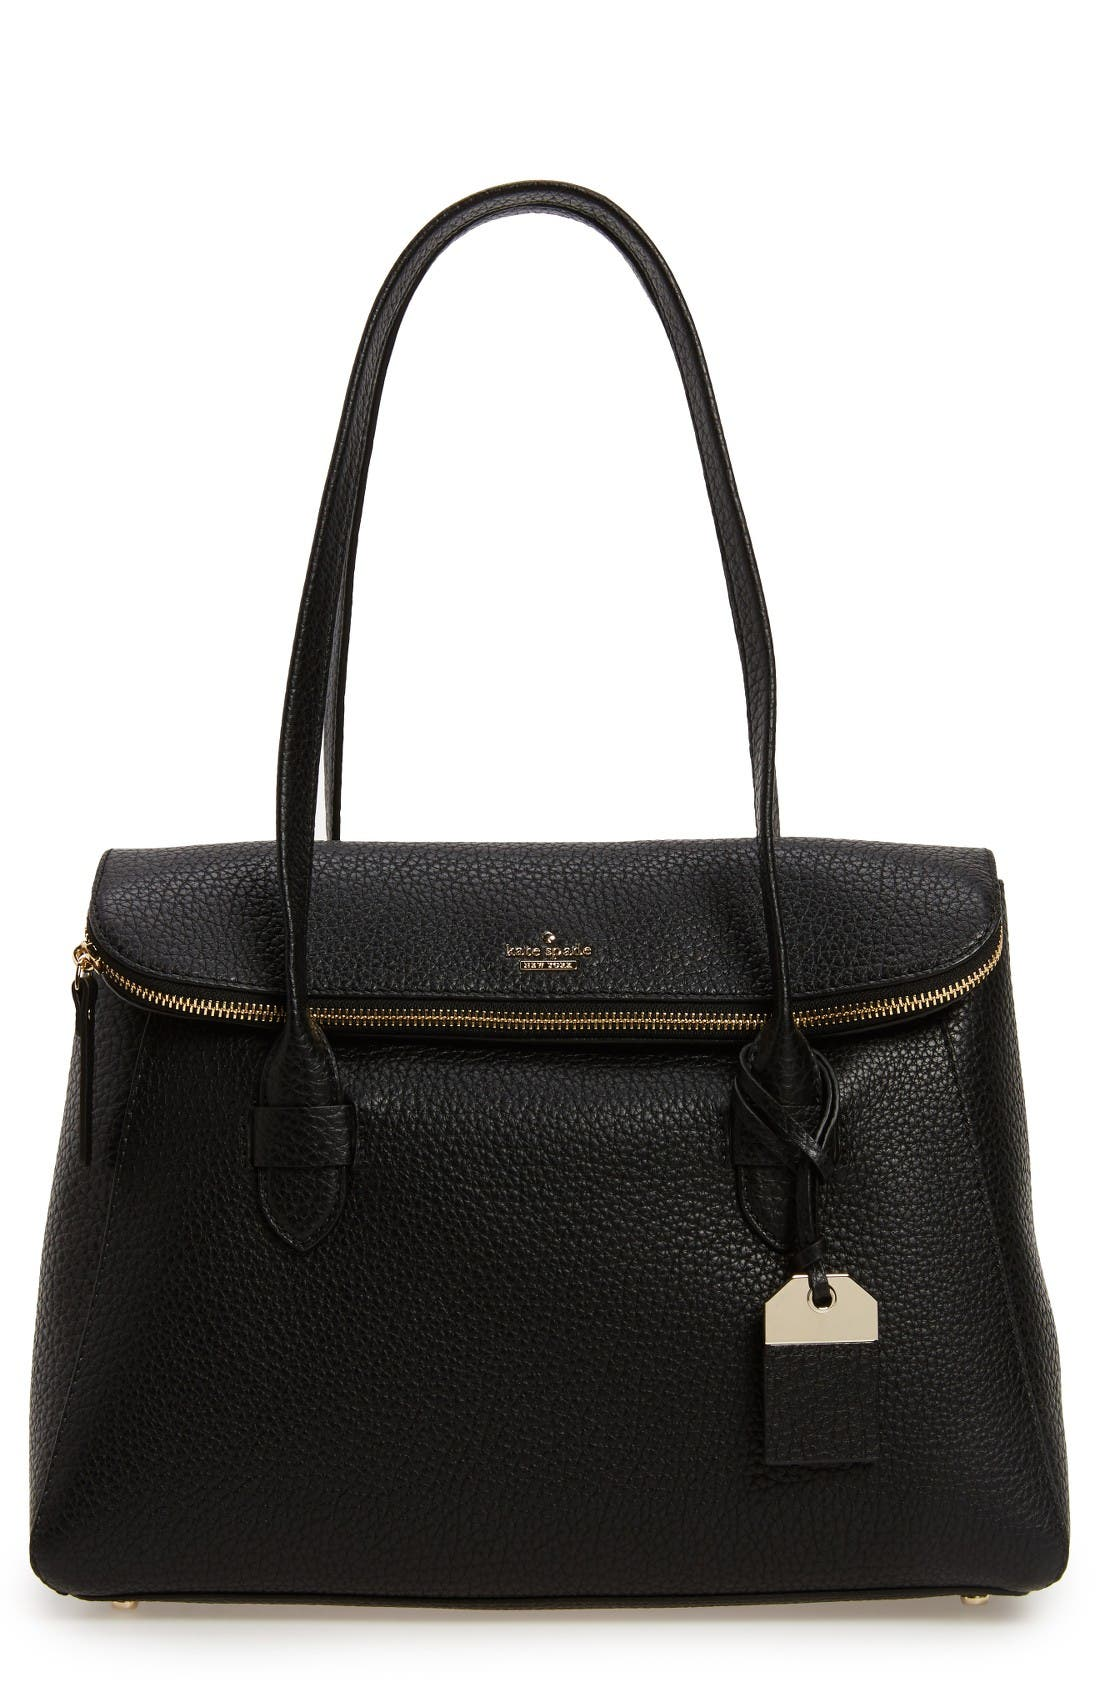 KATE SPADE NEW YORK carter street - laurelle leather tote